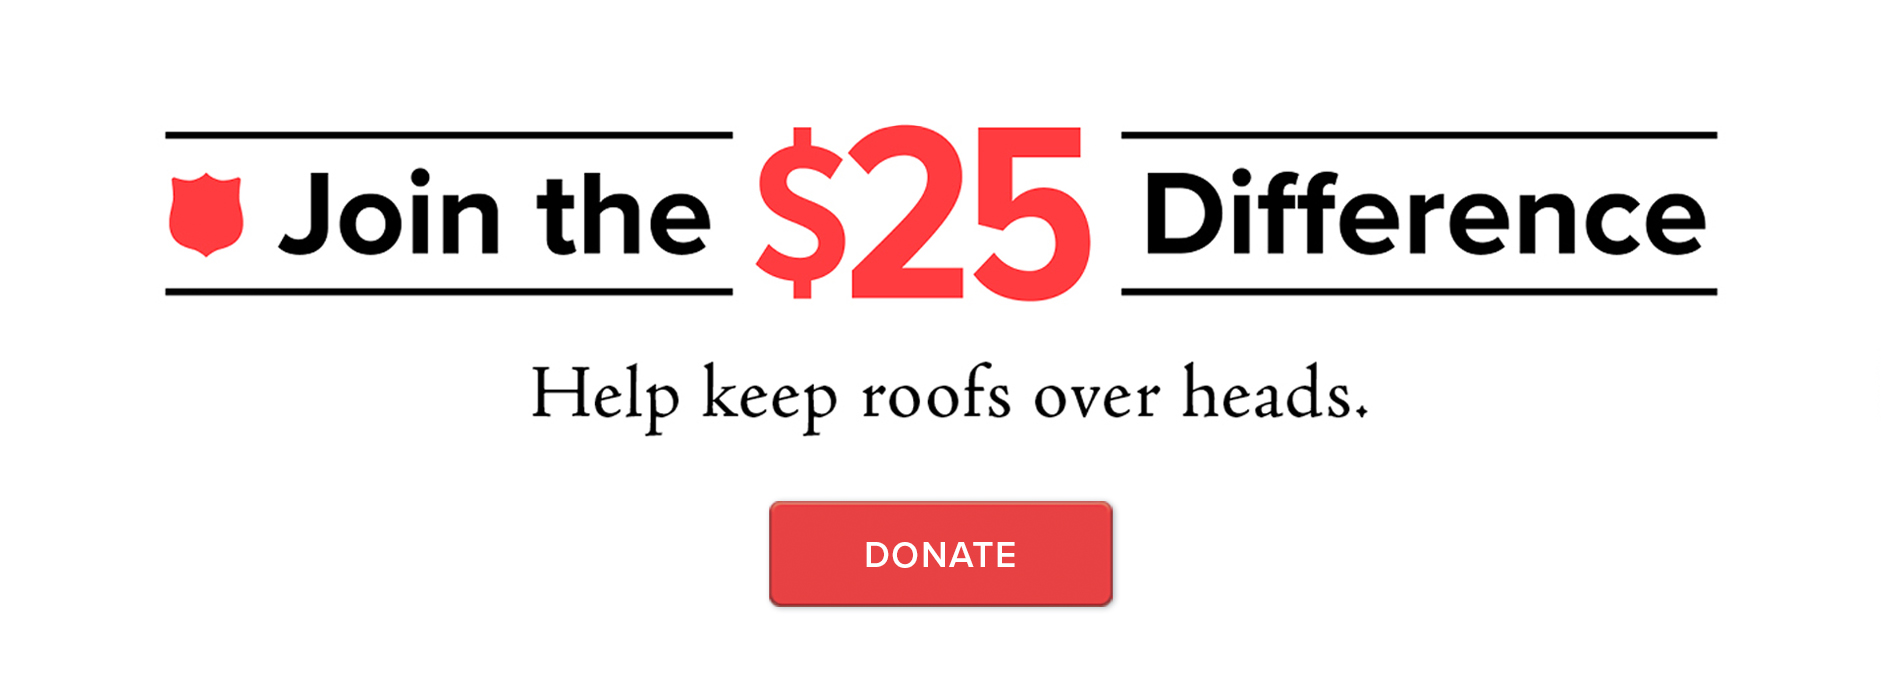 Join the $25 Difference: Help keep roofs over heads.